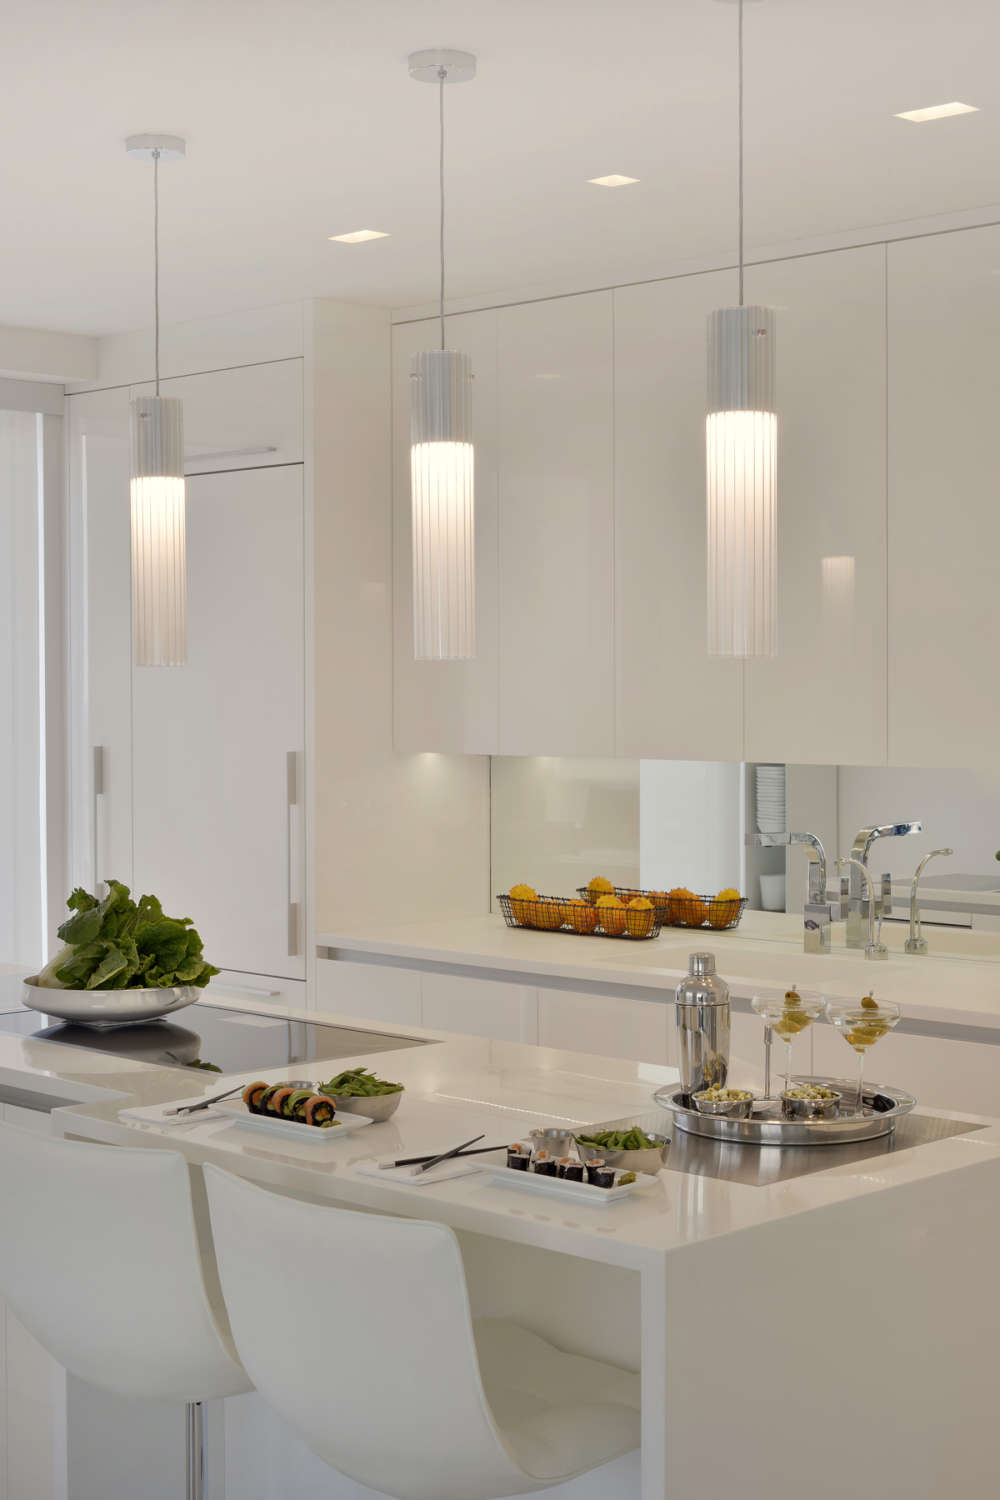 All white contemporary kitchen features high gloss white fully custom flat panel, frameless Artcraft Cabinetry with channel hardware and white quartz countertops. Island with seatign is accented by dramatic white pendant ligting. Design by Goran Savic of Bilotta Kitchens.